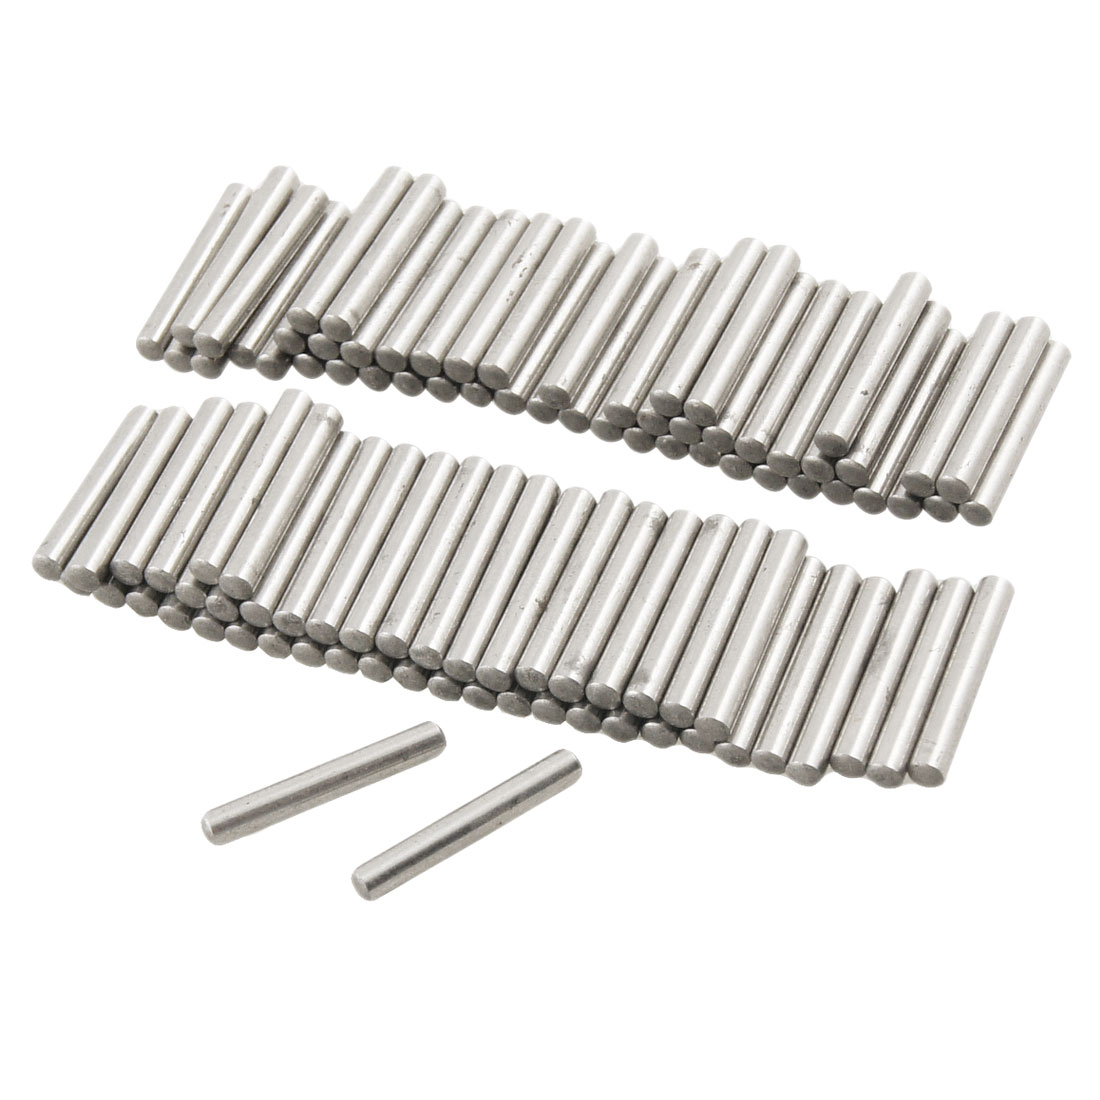 100 Pcs Stainless Steel 2.5mm x 15.8mm Dowel Pins Fasten Elements